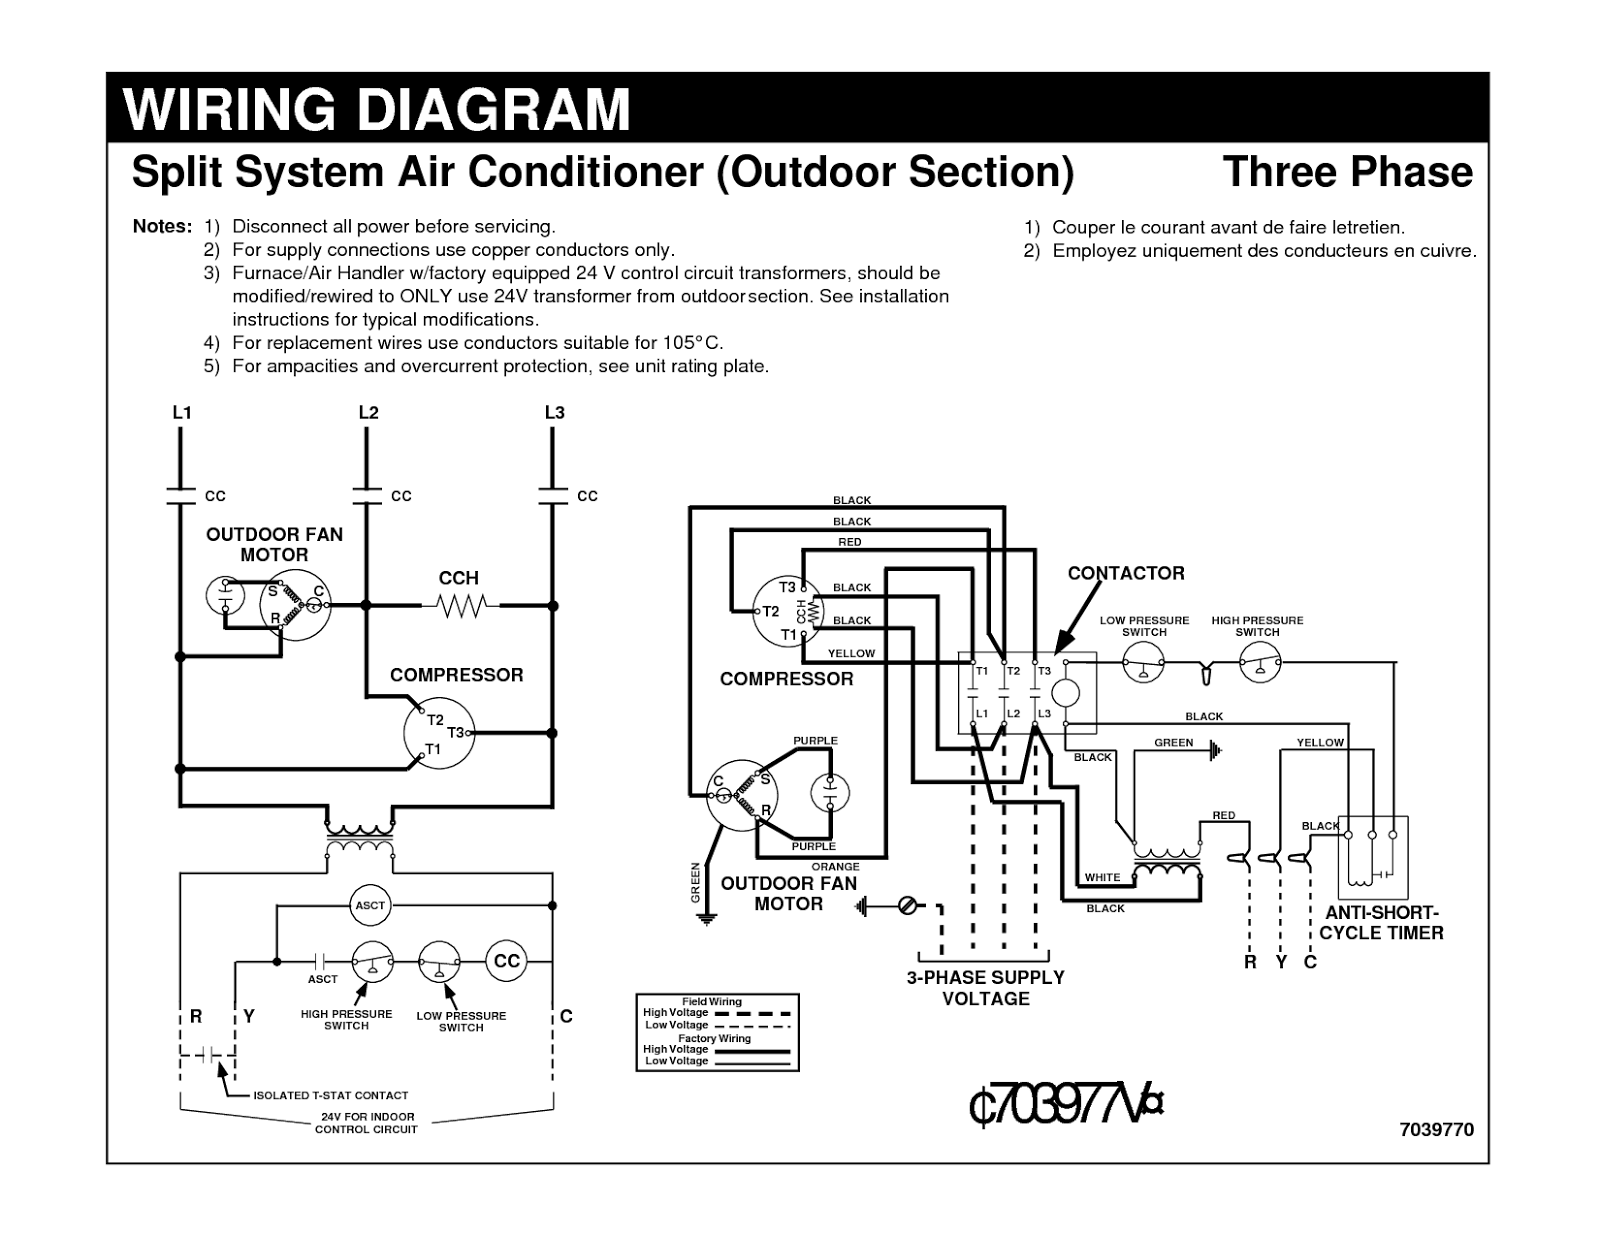 Schematic Wiring Diagrams Worksheet And Diagram 1995 Yamaha Virago 750 Usa Ac Pictures U2022 Rh Mapavick Co Uk 84